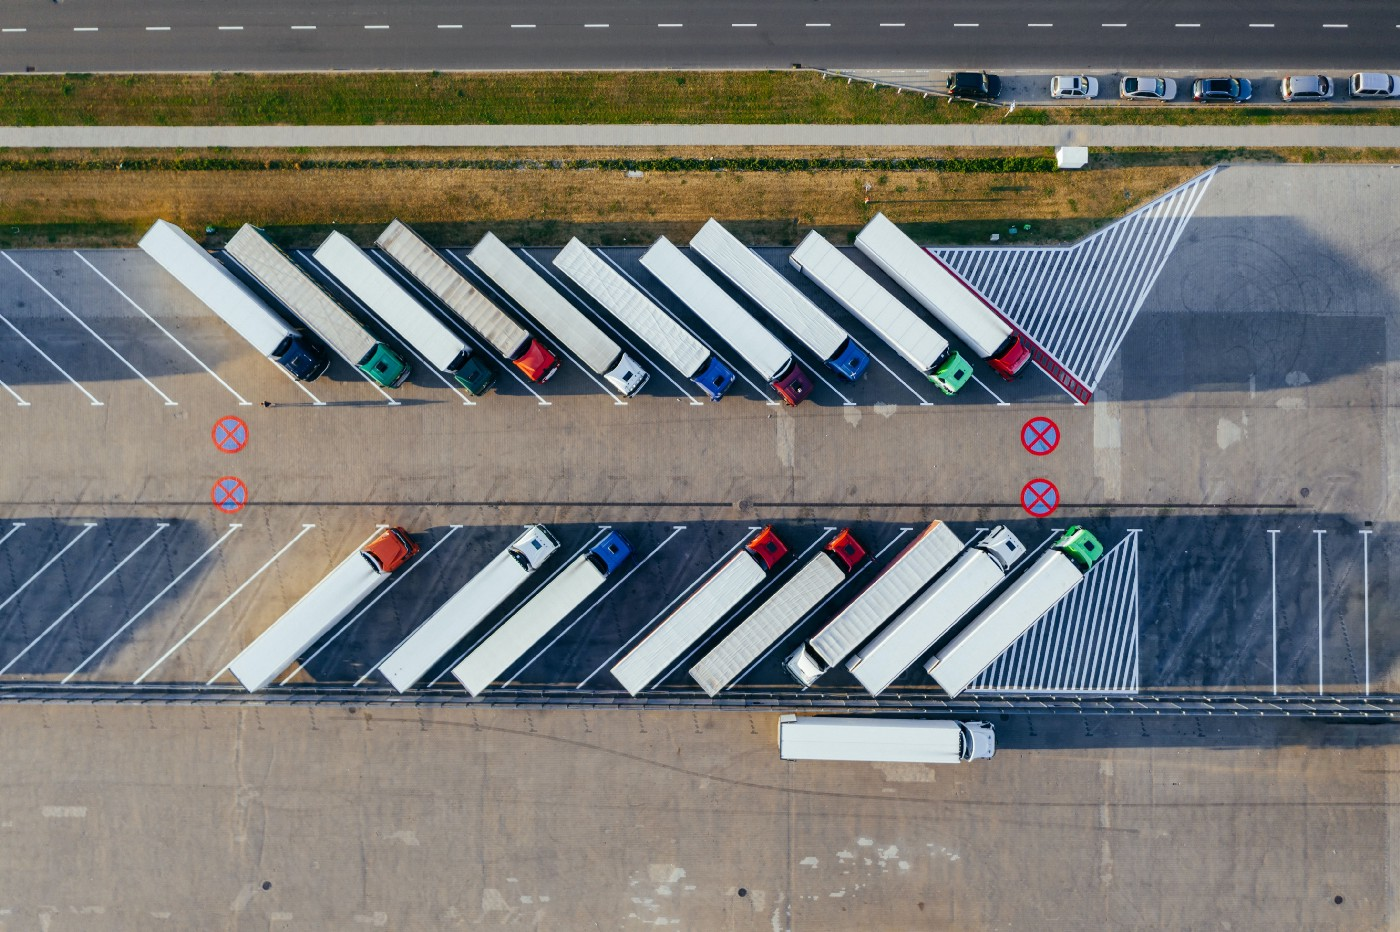 3PL logistic companies with electric vehicles